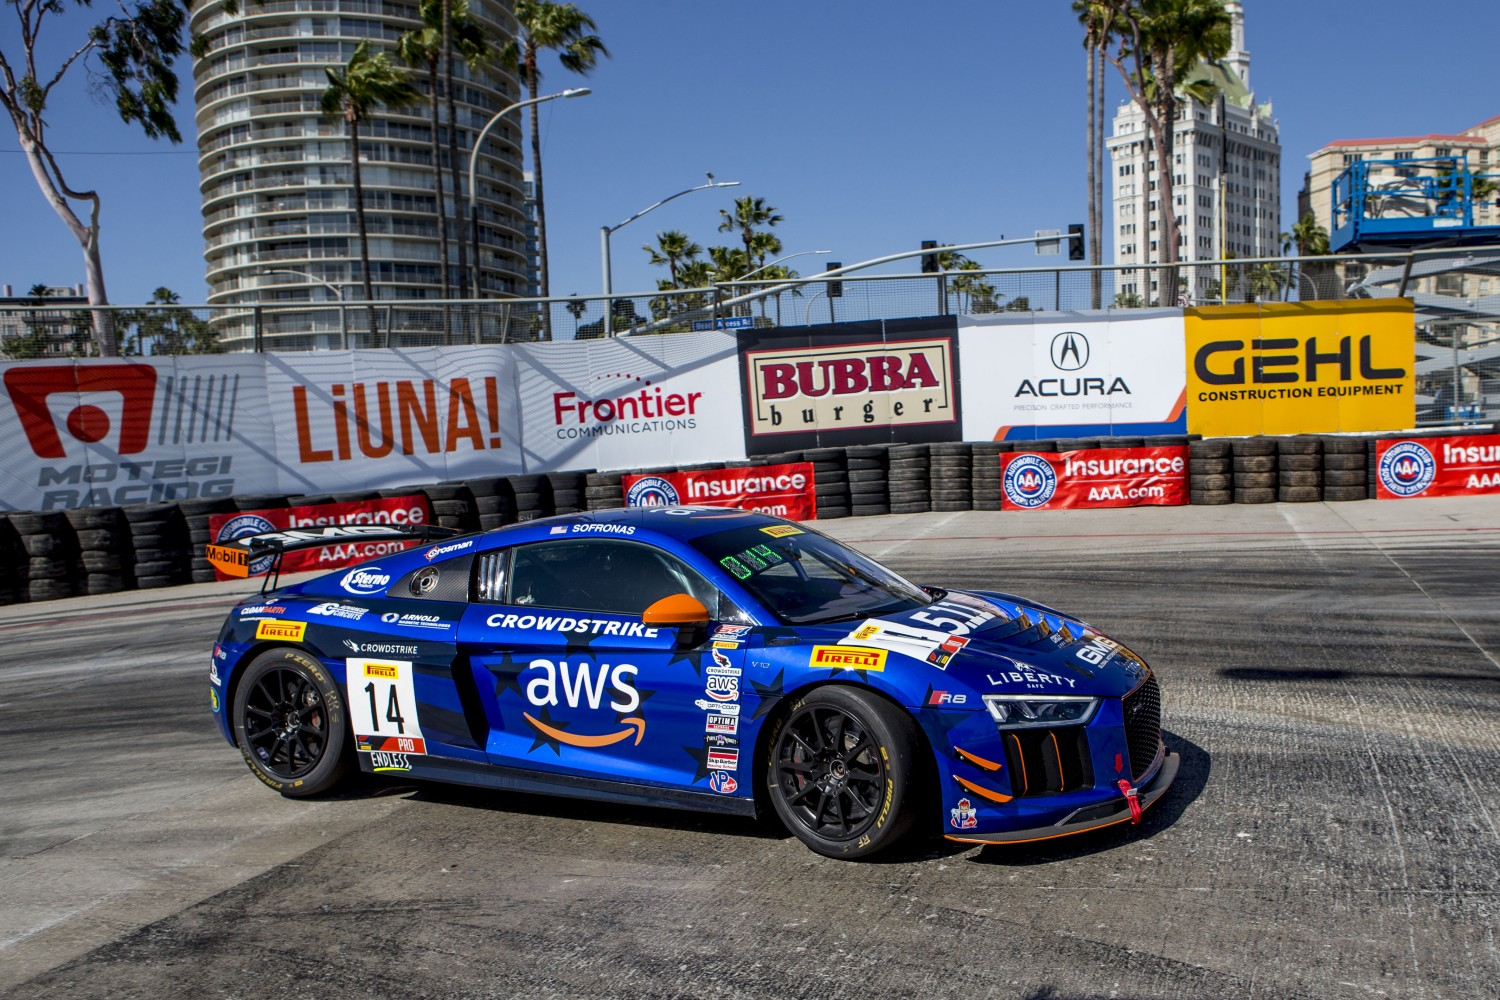 #14 Audi R8 LMS GT4 of James Sofronas, Streets of Long Beach, Long Beach, CA.  (Photo by Ken Weisenberger)  | Brian Cleary/BCPix.com